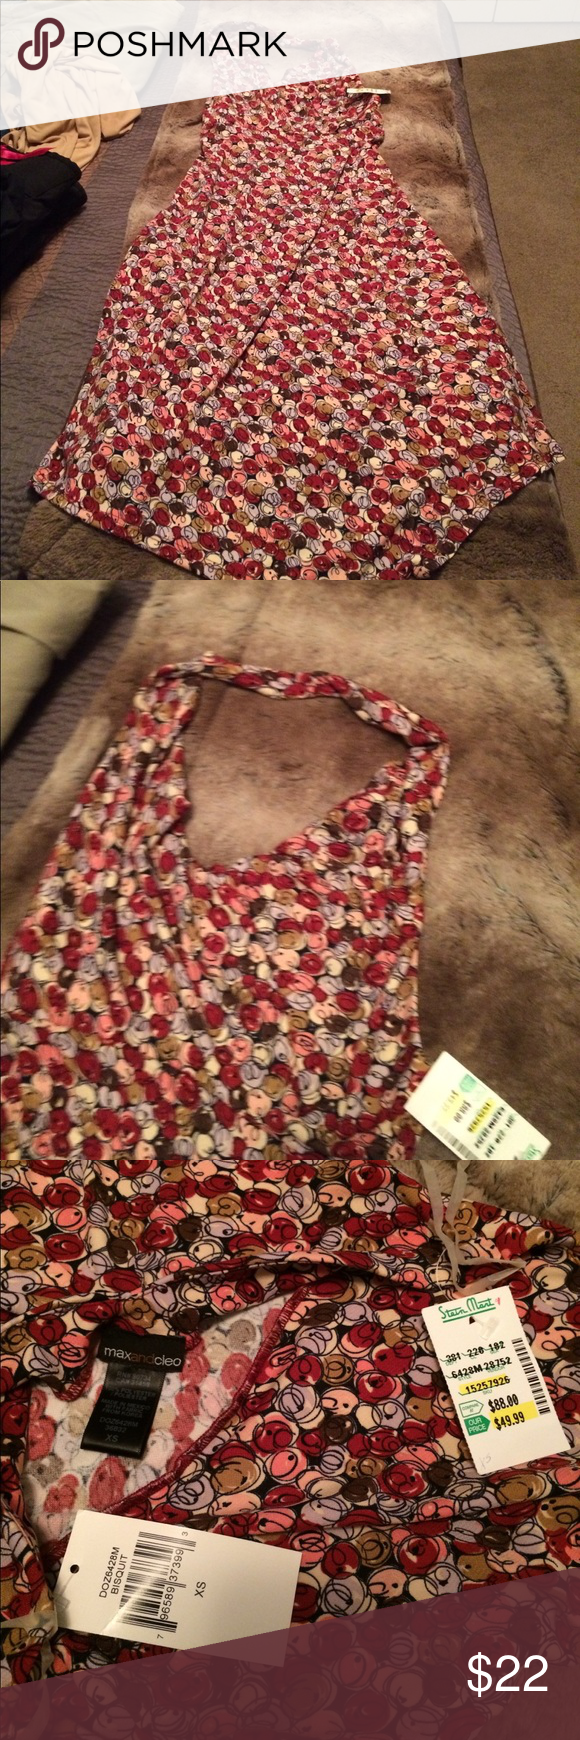 NWT Max and Cleo extra small halter dress Size extra small new with tags max and Cleo halter dress Max & Cleo Dresses Backless